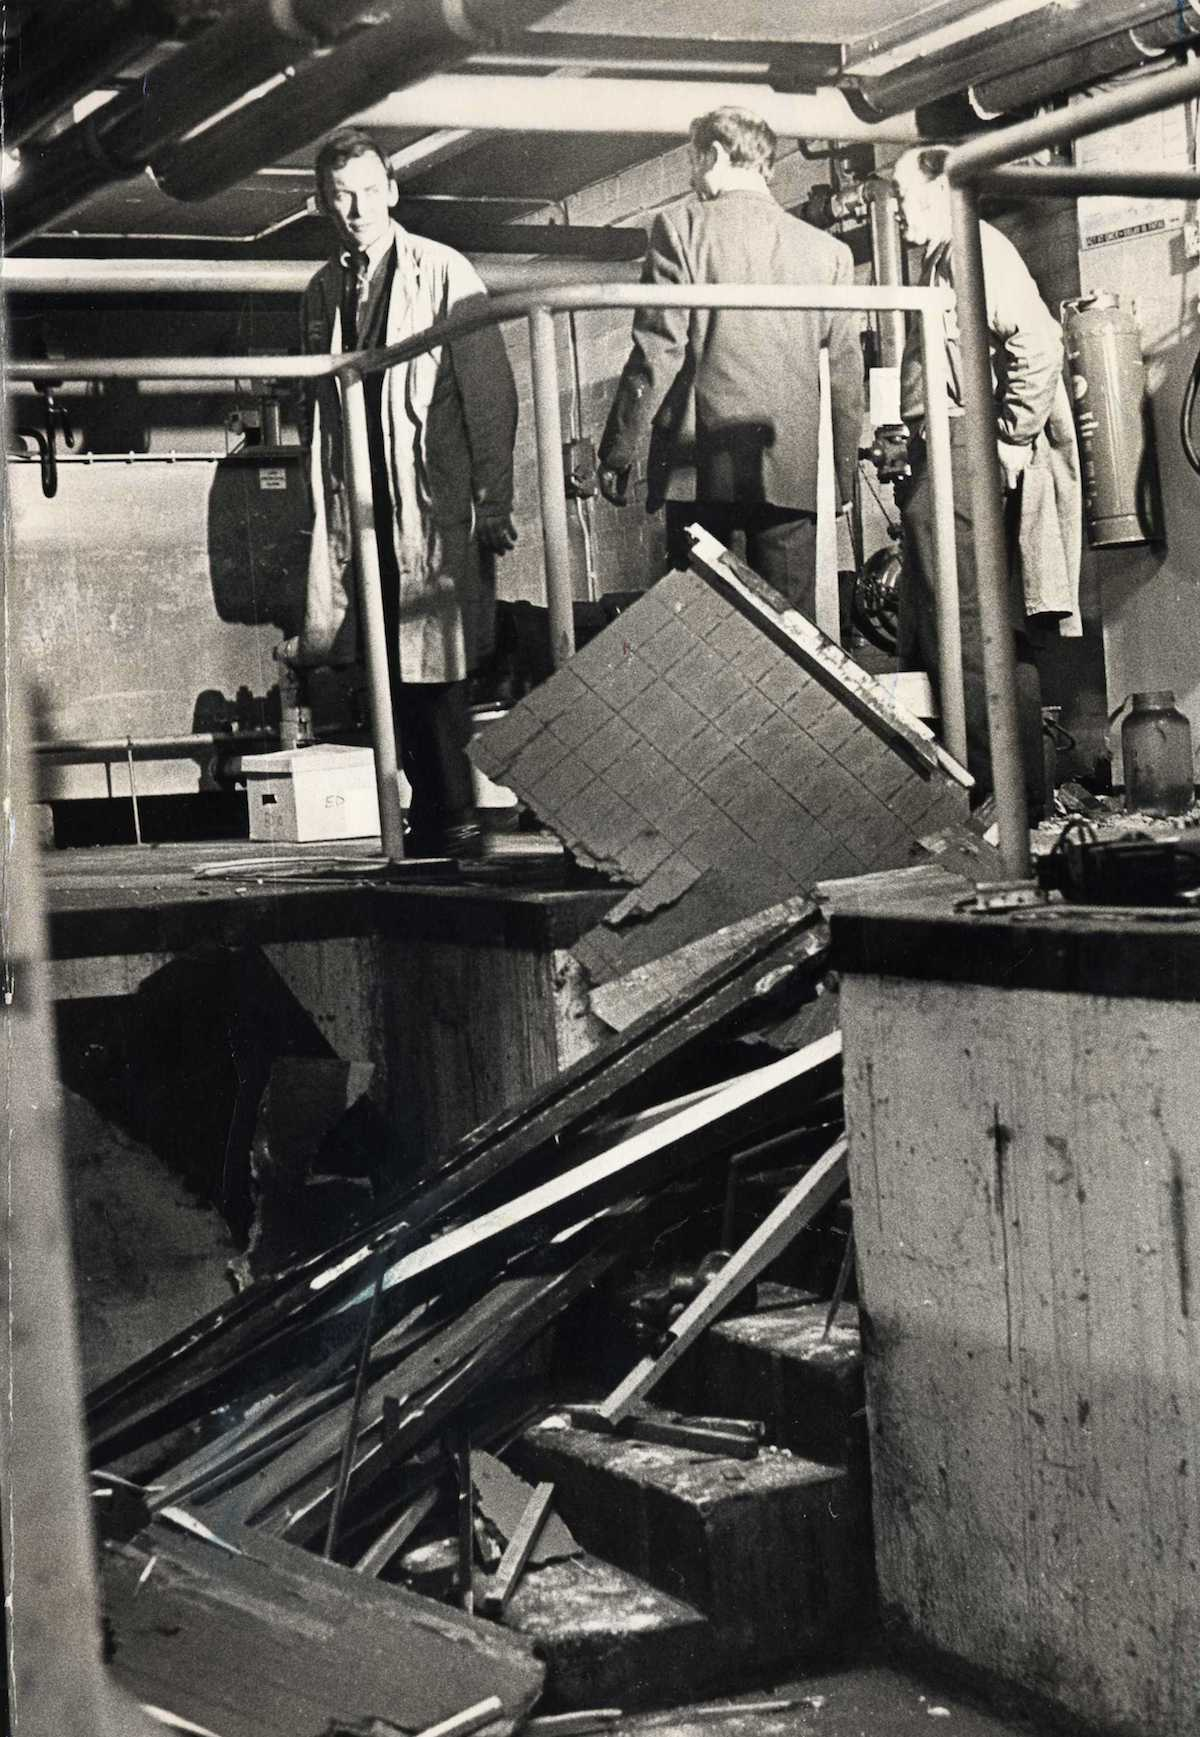 Bomb Damage In The Ford Motor Company Office In Gants Hill. The Angry Brigade Launched A String Of Bombing Attacks Against The Heart Of The British Establishment In The Seventies. 19 Mar 1971